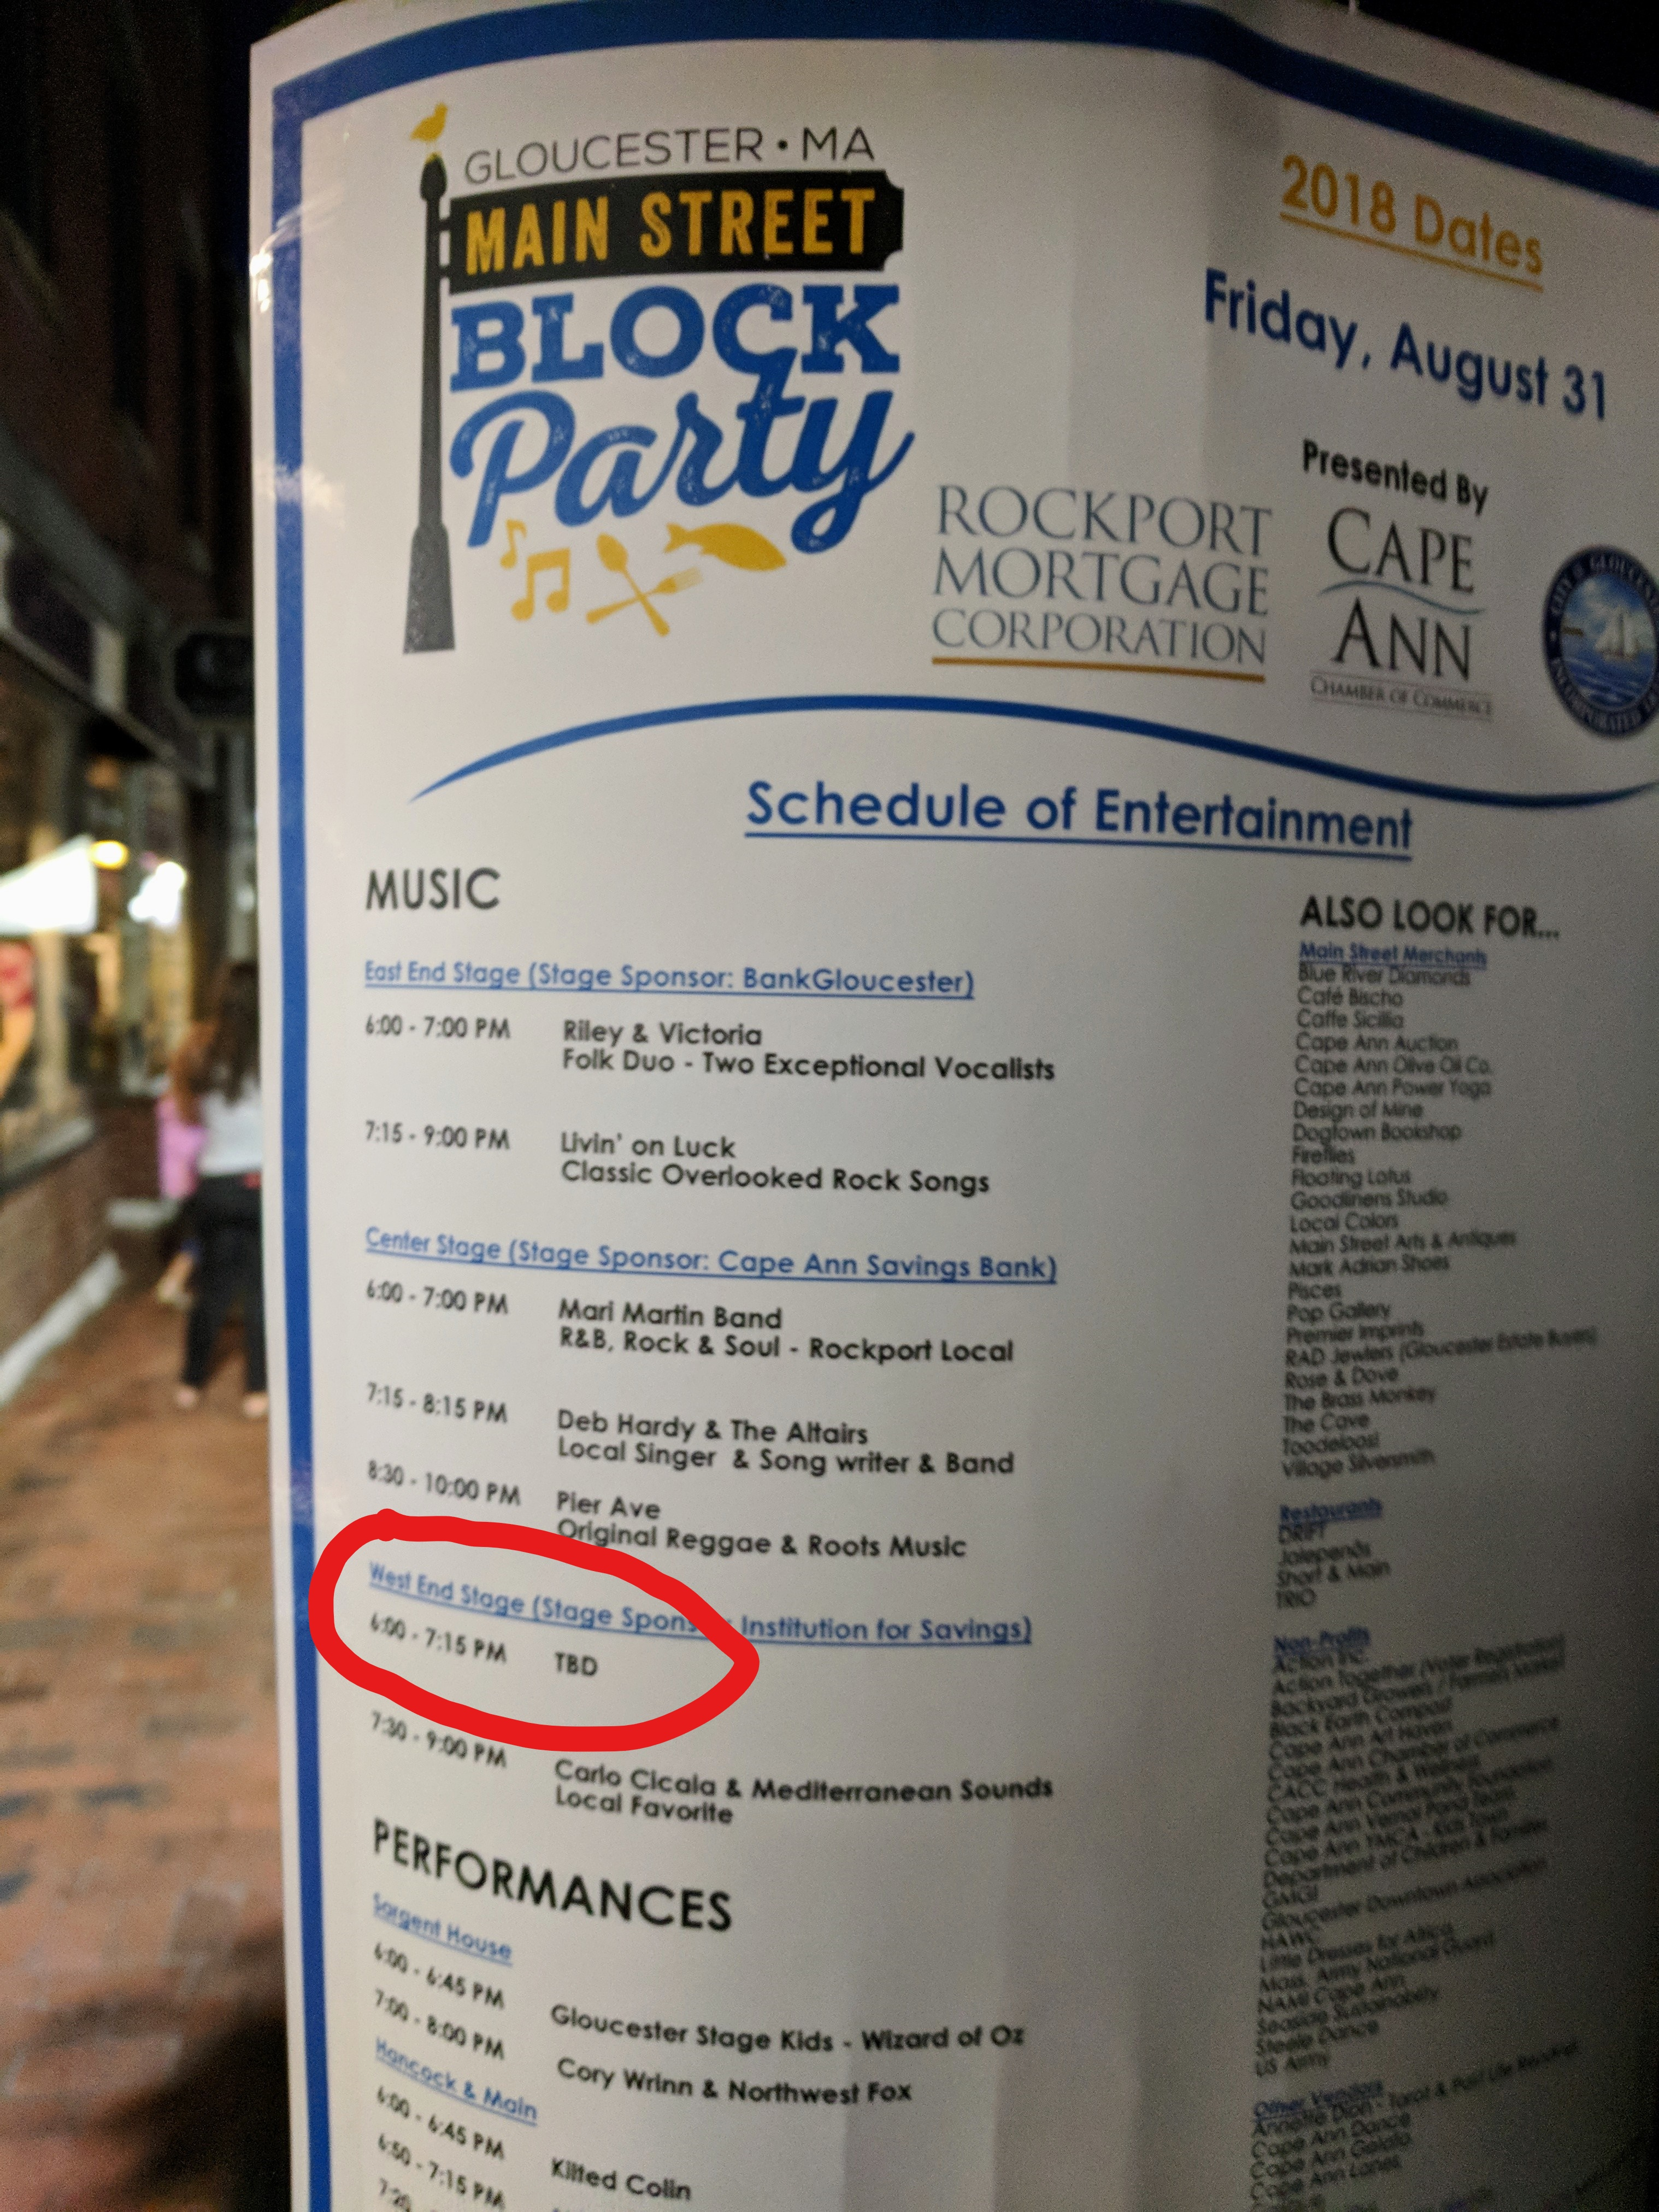 gloucester ma block party events_20180831_TBD.jpg